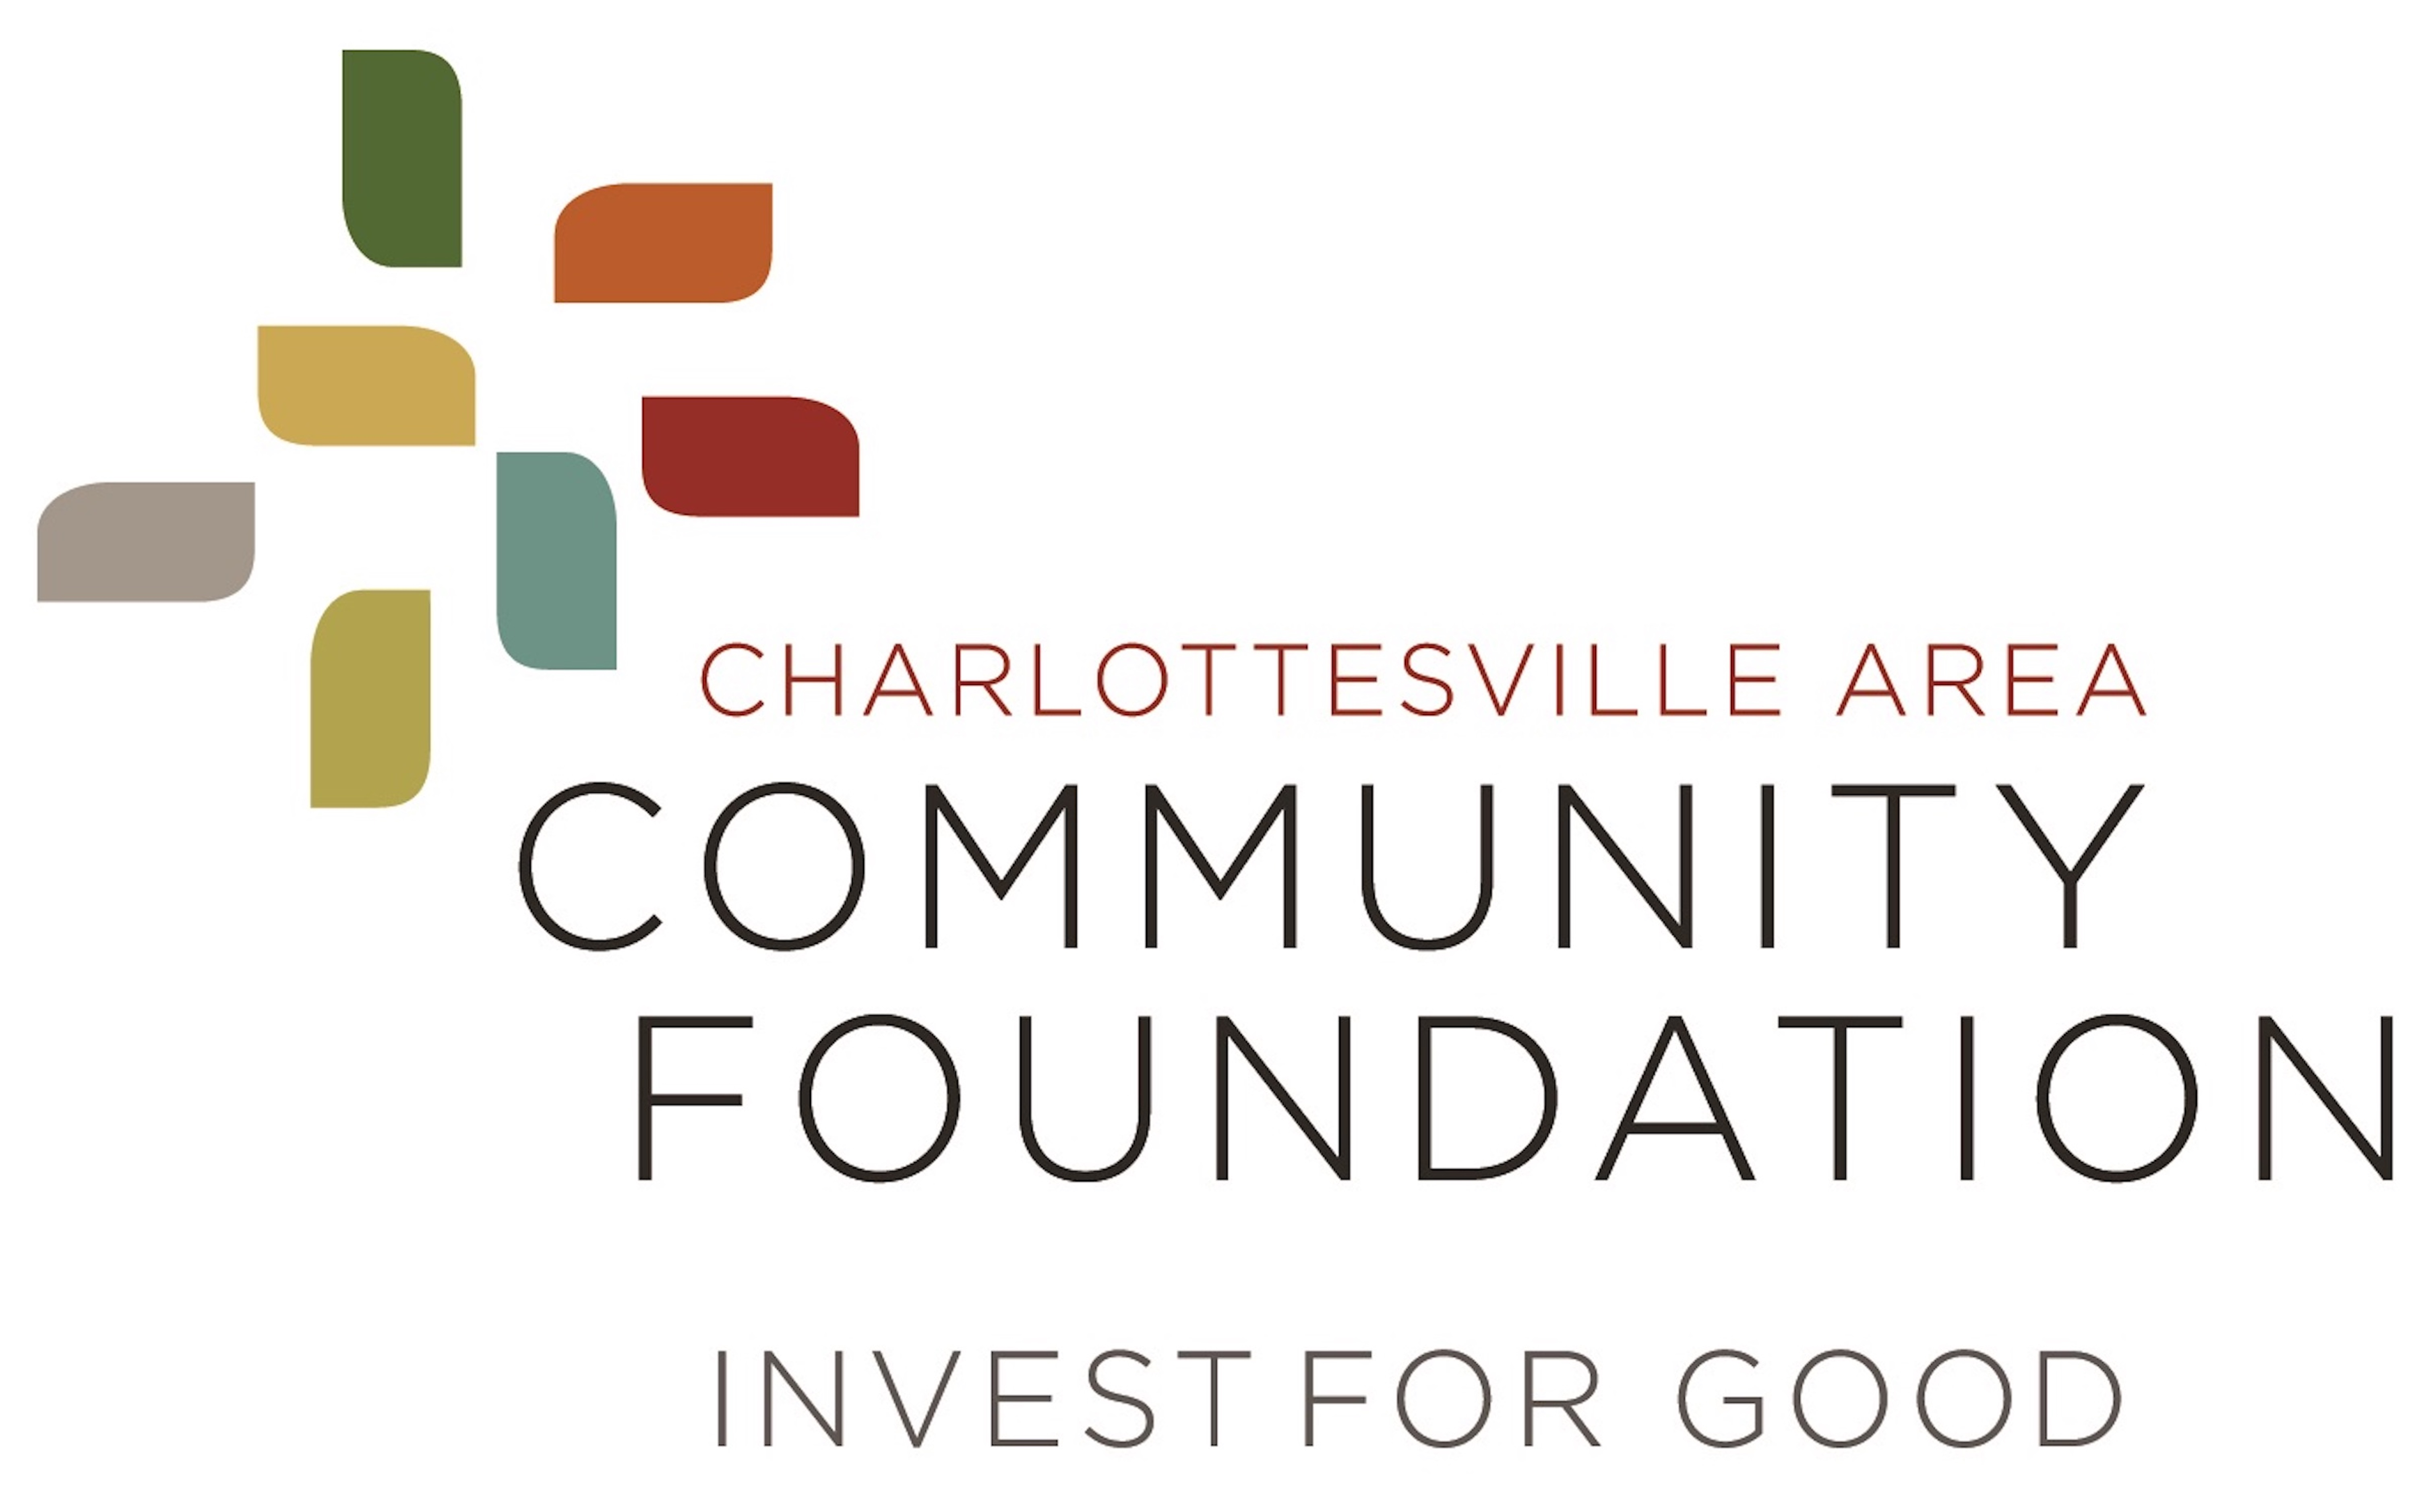 Charlottesville Area Community Foundation